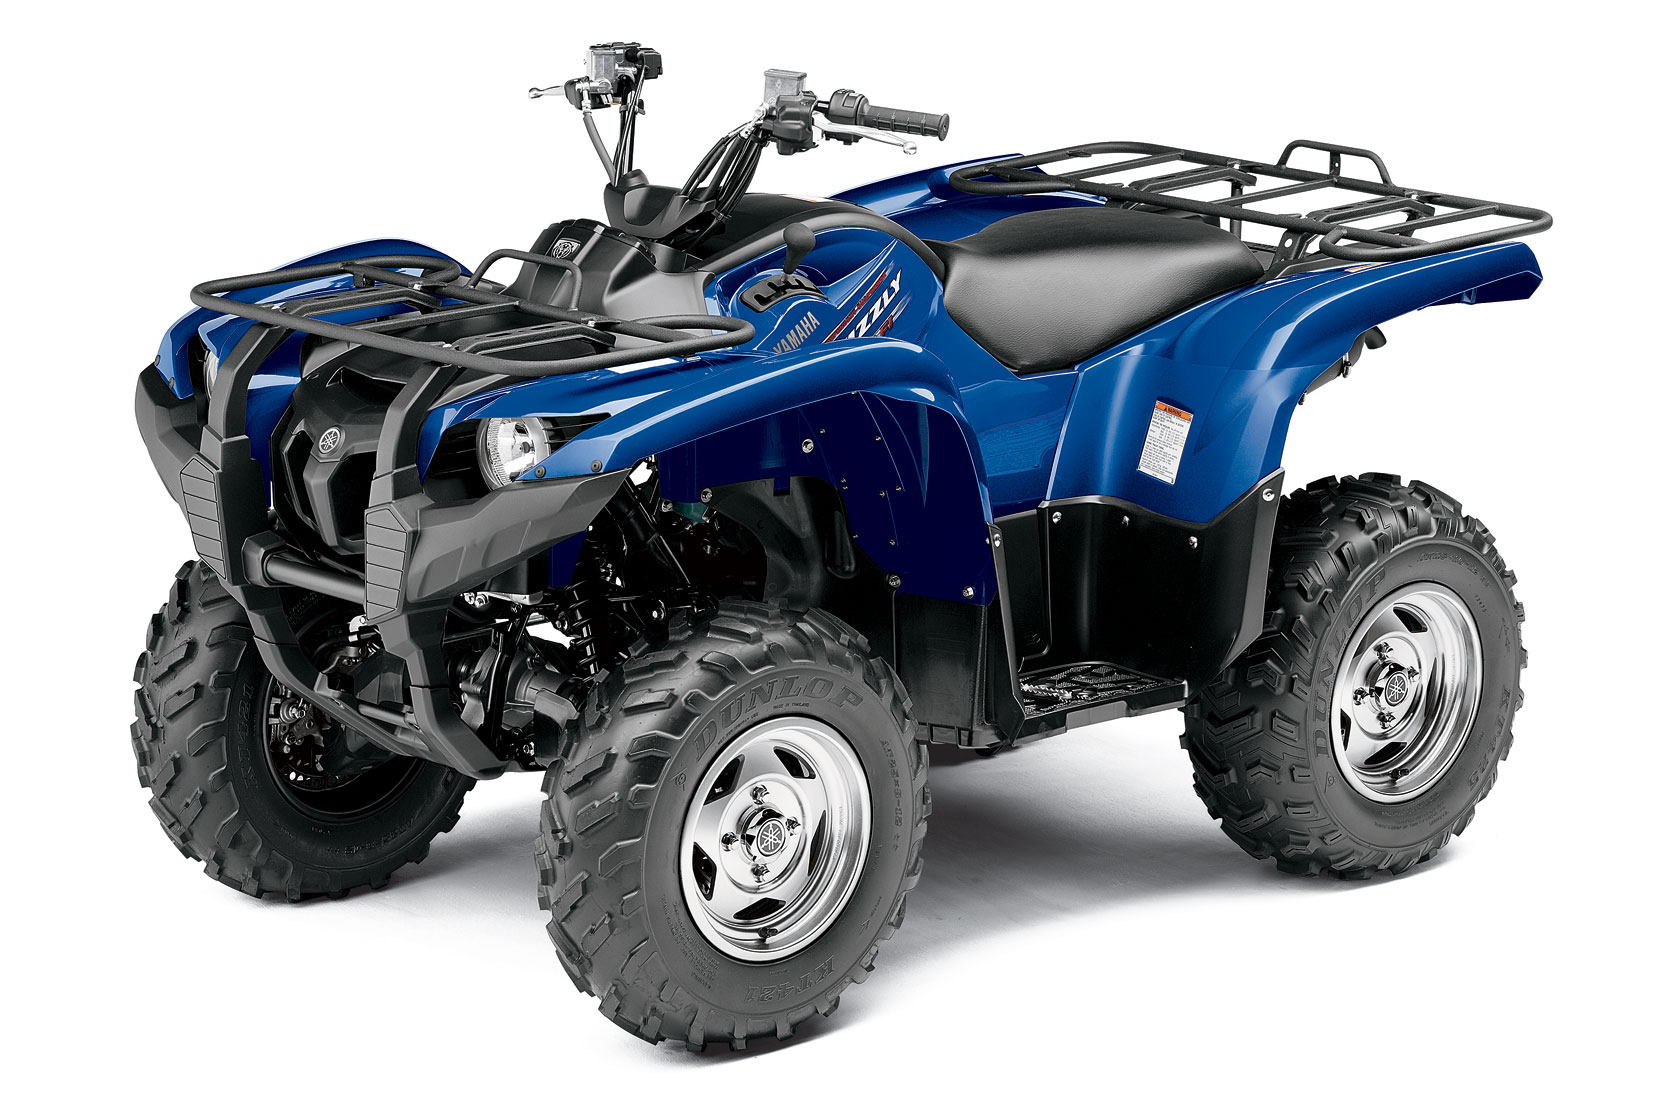 Yamaha grizzly 550 fi 4x4 specs 2010 2011 autoevolution for Yamaha clp 550 specifications